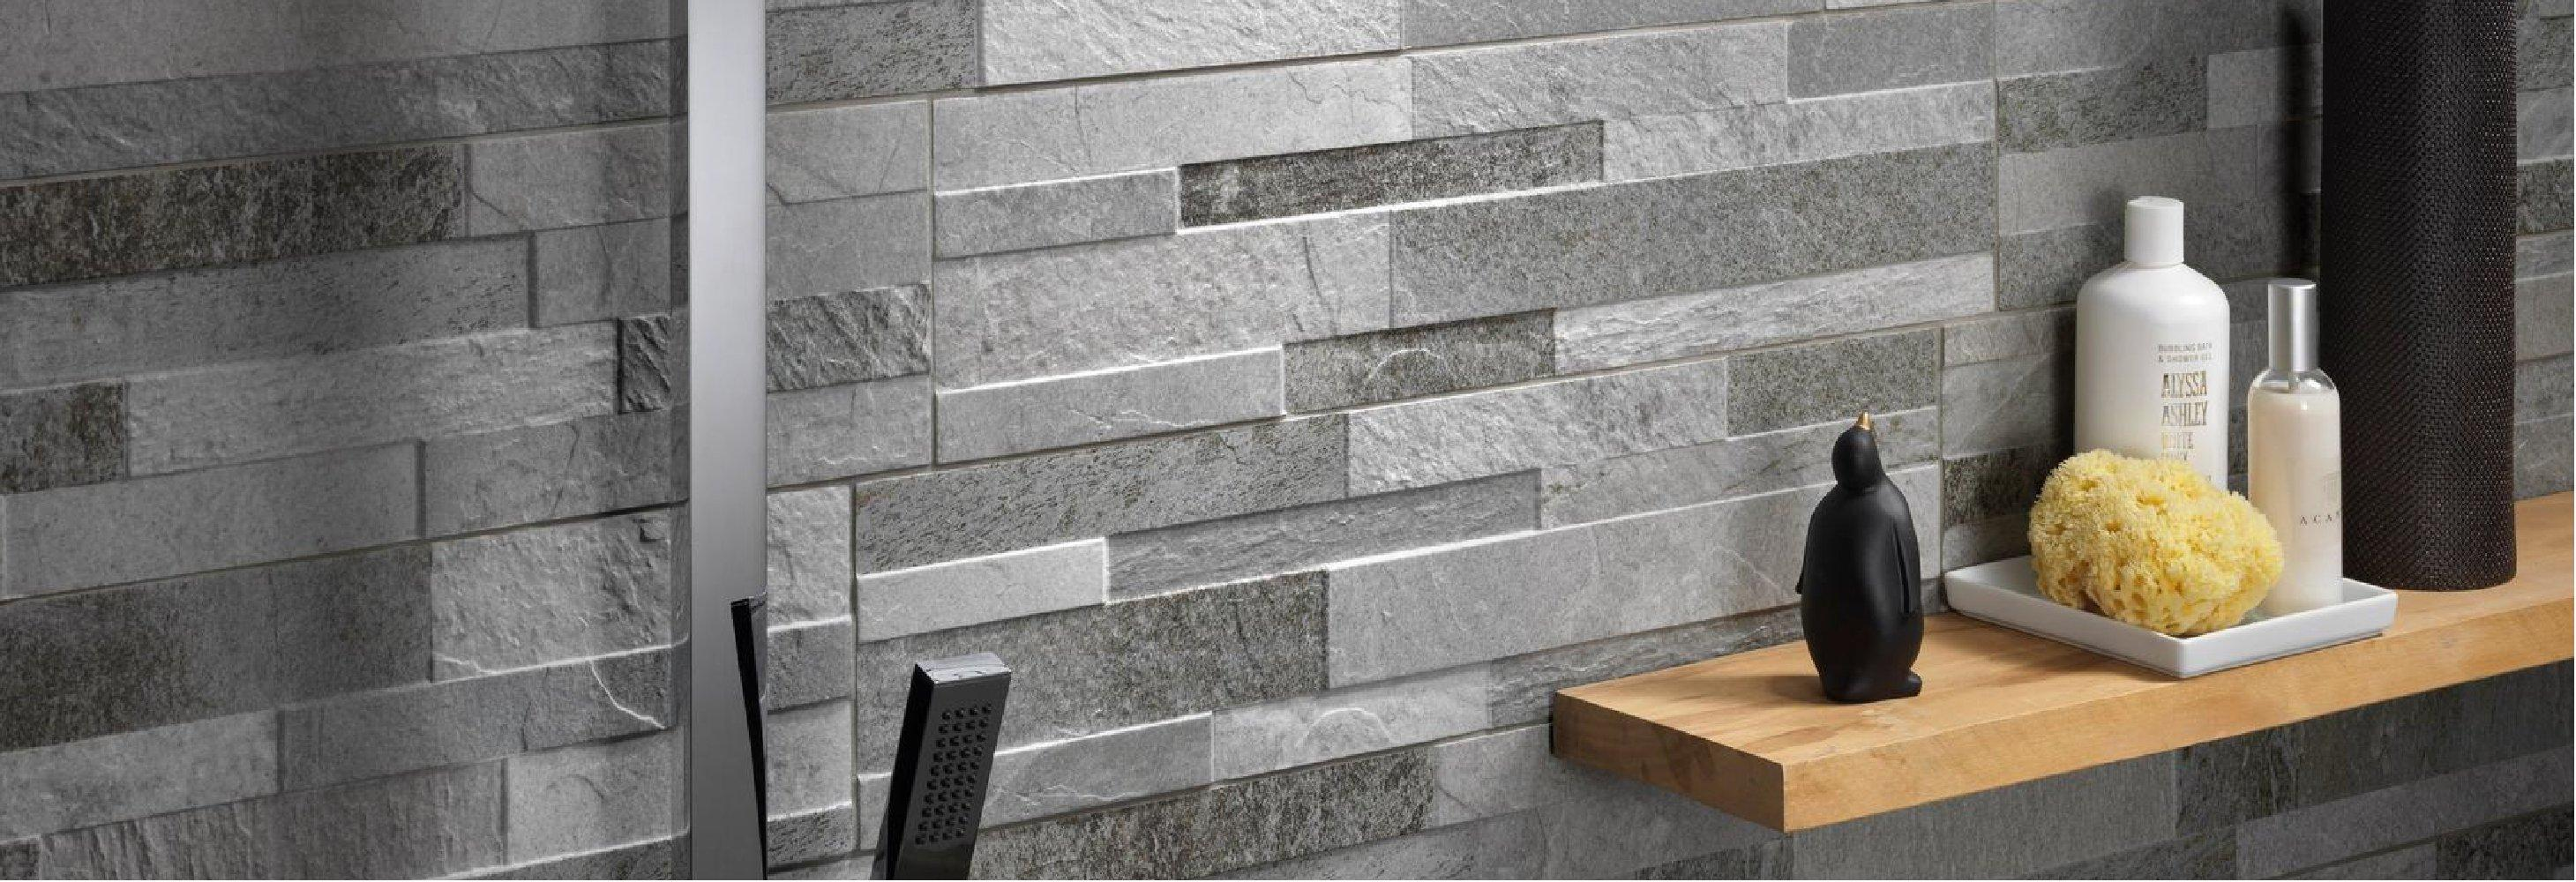 Ordinaire Wall Tile